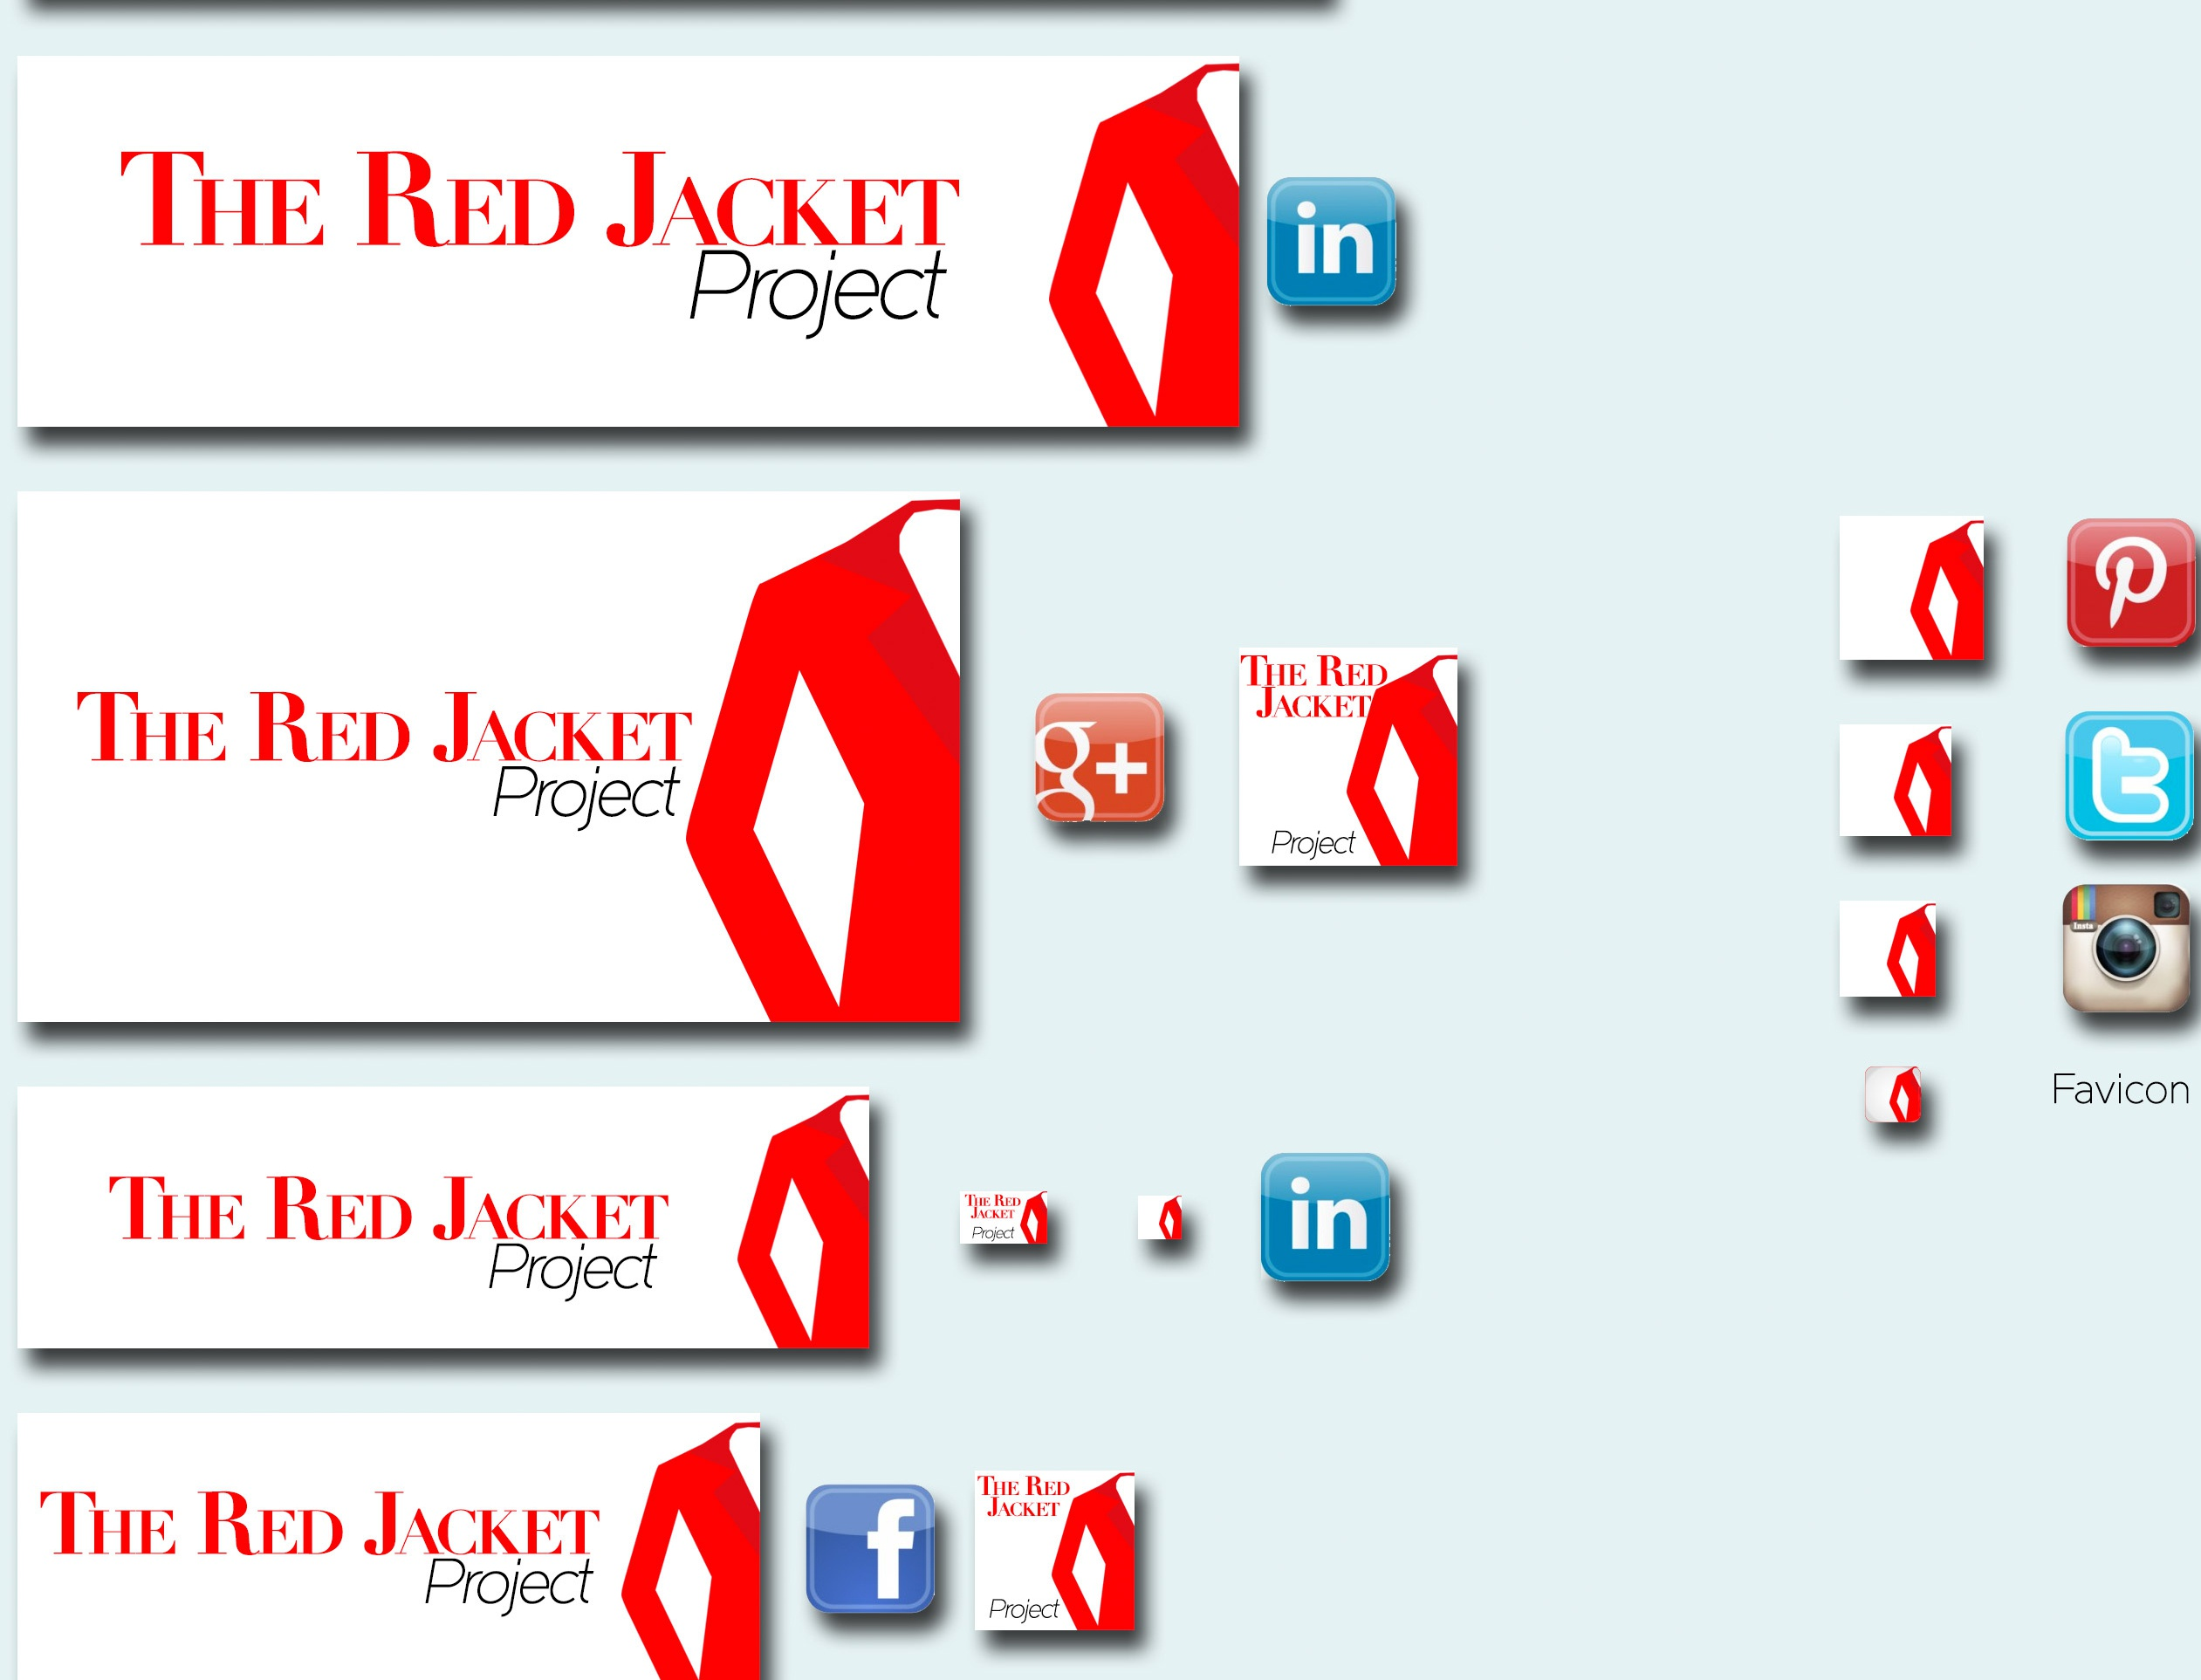 The red jacket social all